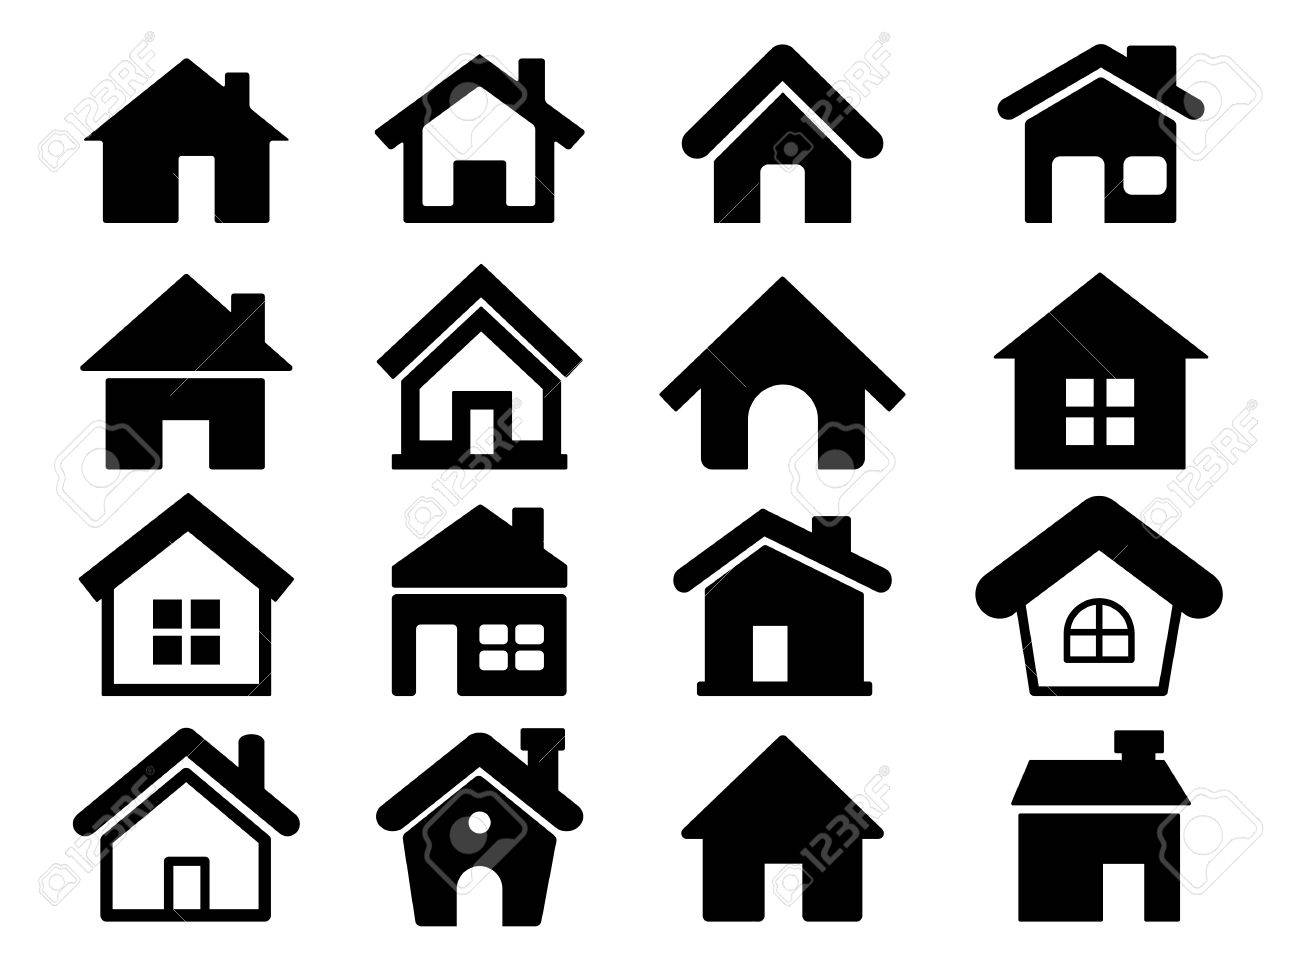 Houses icons set, Home icons - 61753249